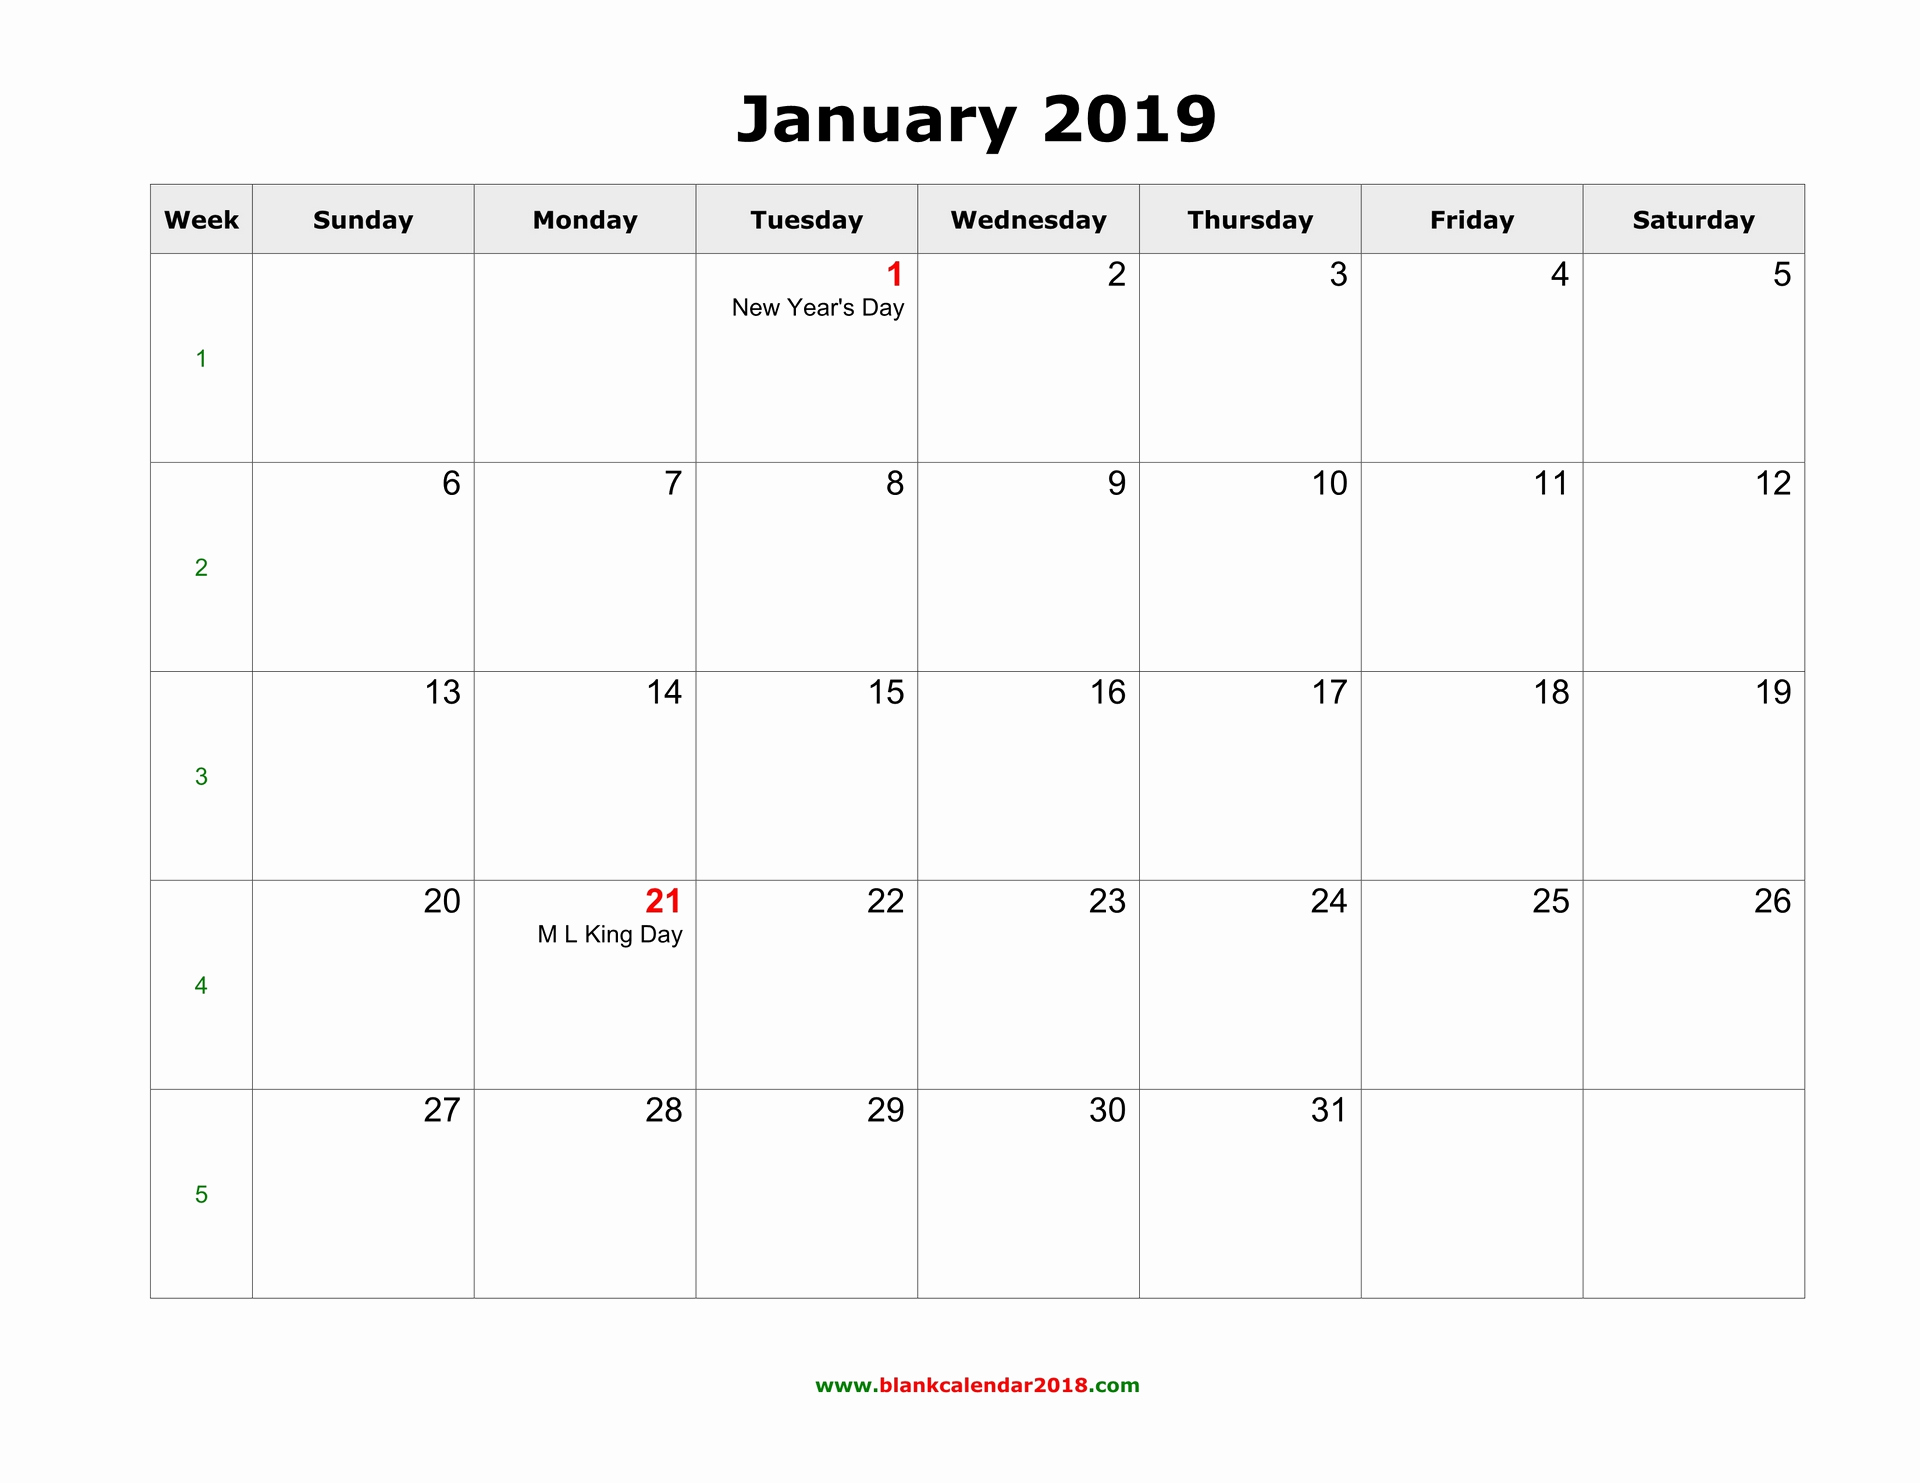 2019 Calendar Template Word Awesome Blank Calendar 2019